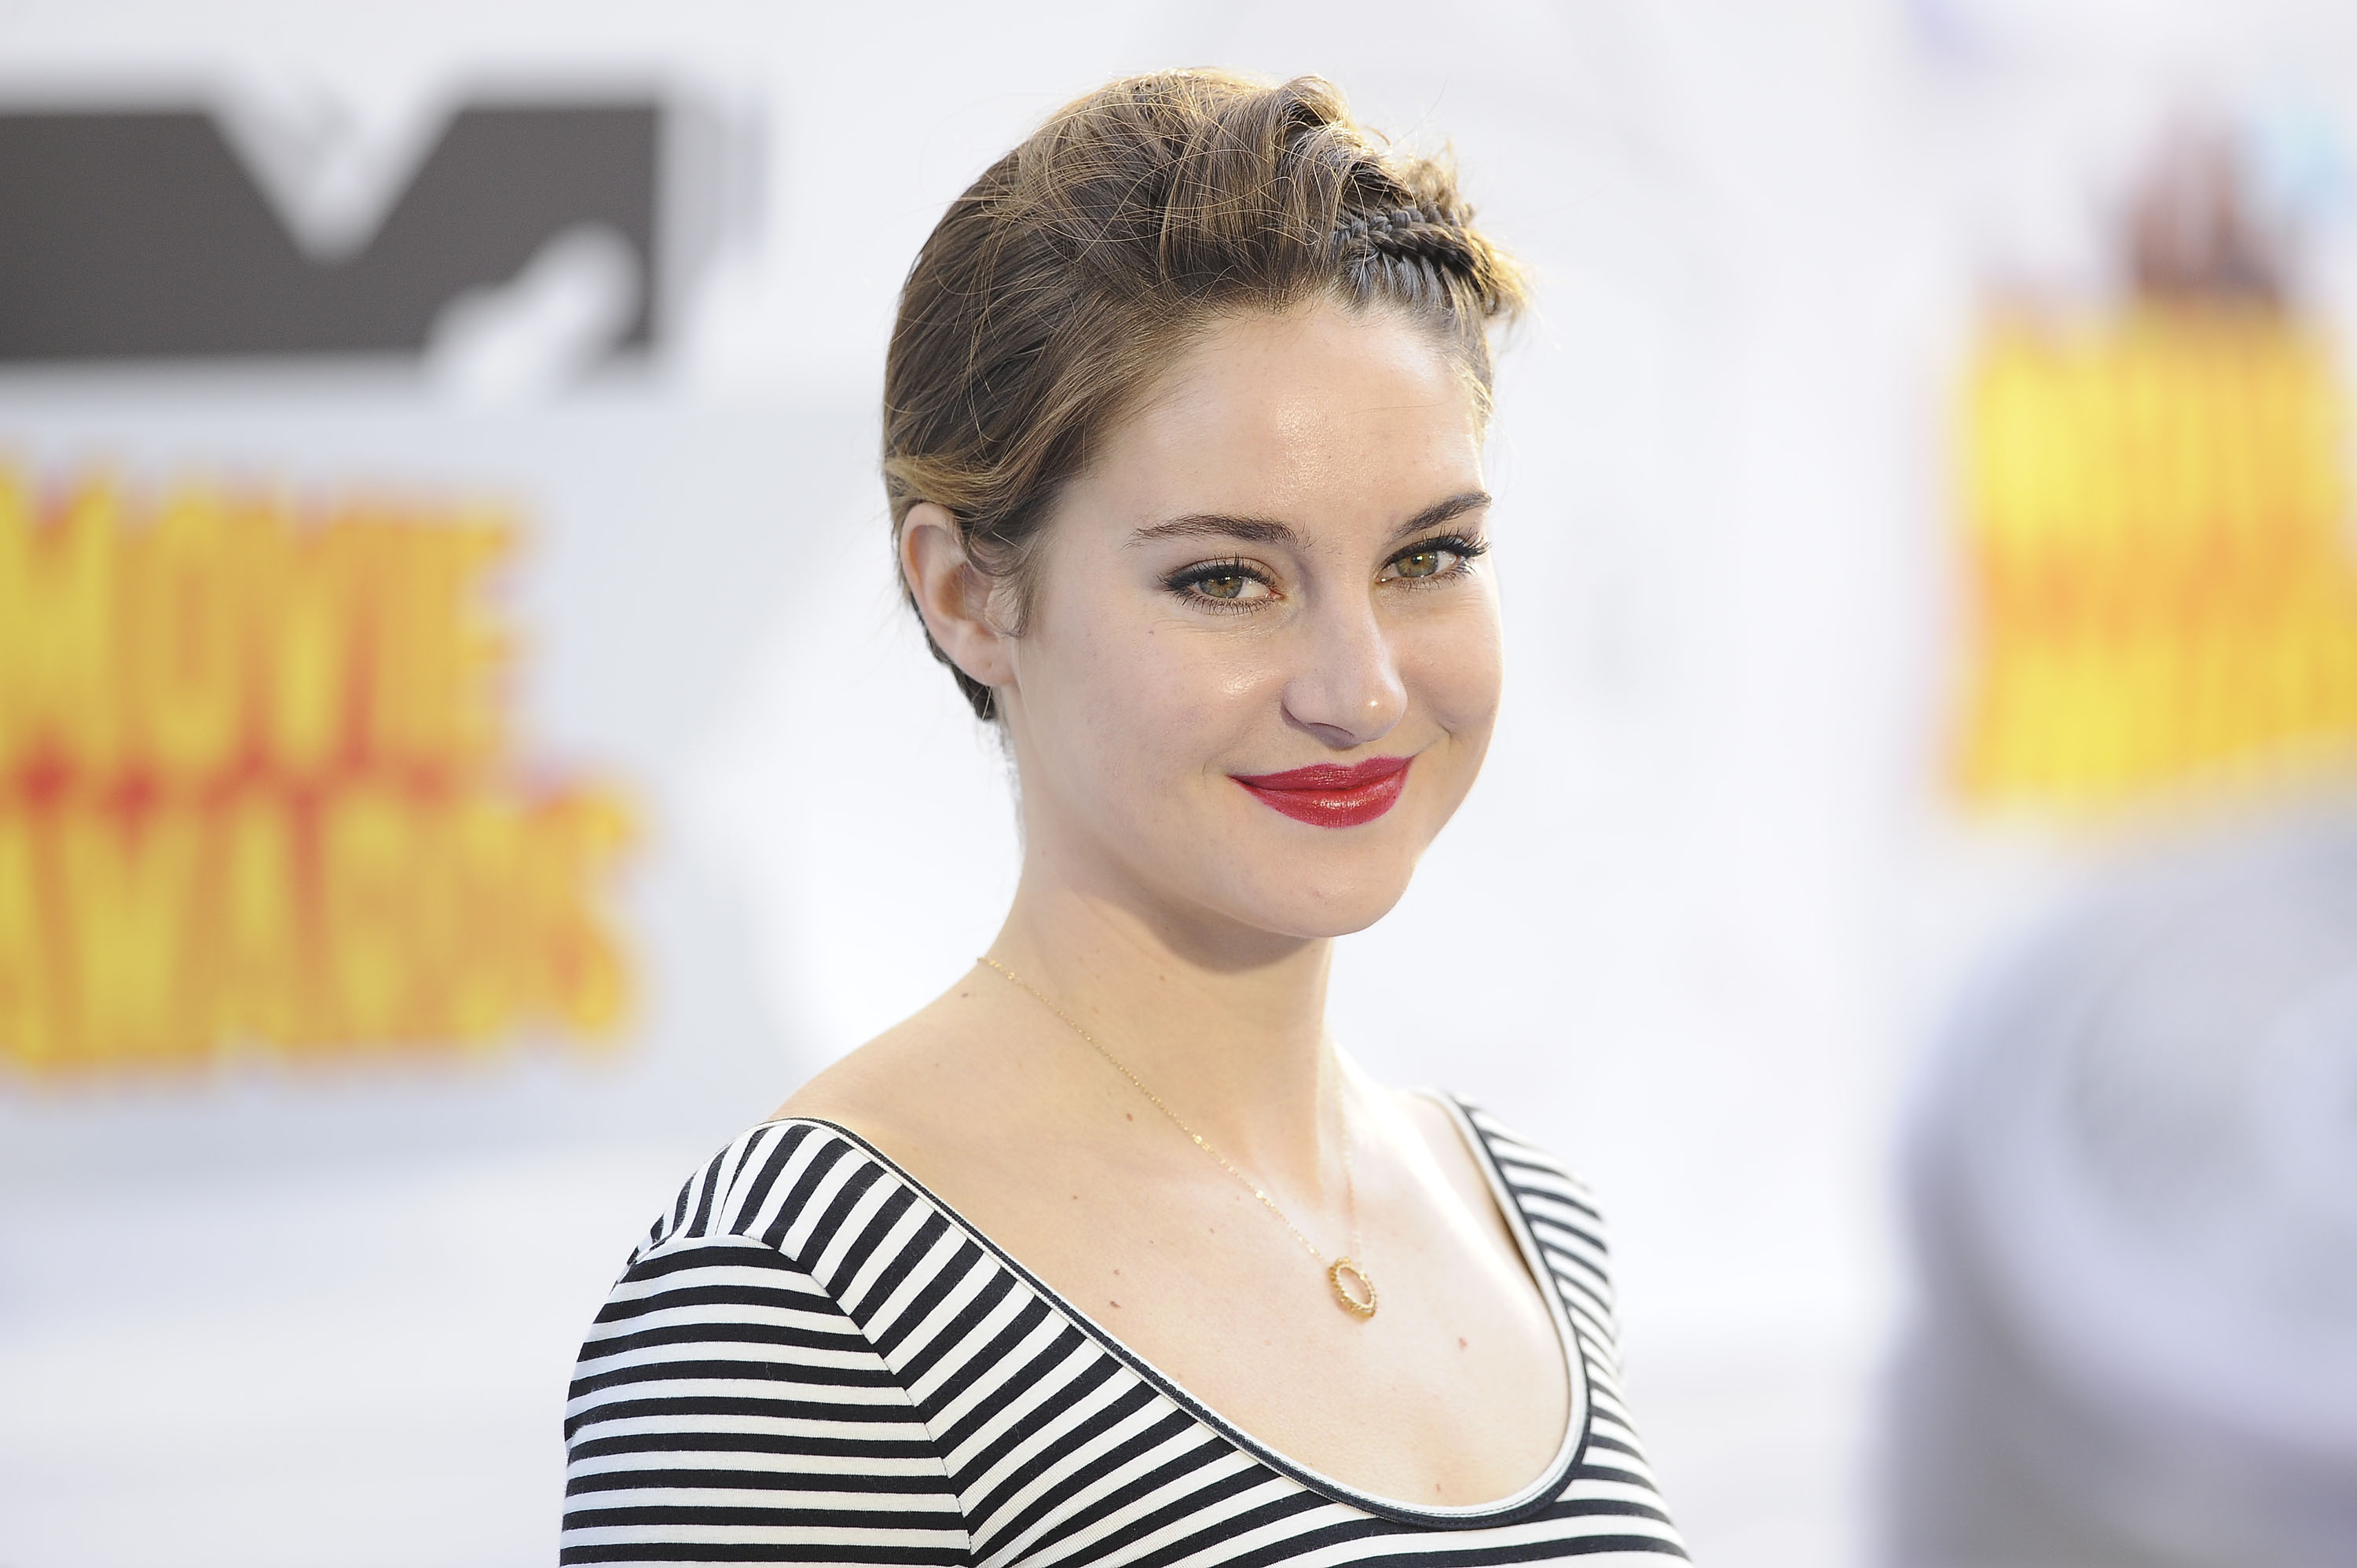 """Shailene Woodley said on an interview: """"I'm not a big technology person. I don't even have a smartphone. I don't even have a cellphone! And if I were to have one, it would be a flip-phone […] The more you get away from all the technological buzz, the more freedom you have."""" (Photo: Archive)"""